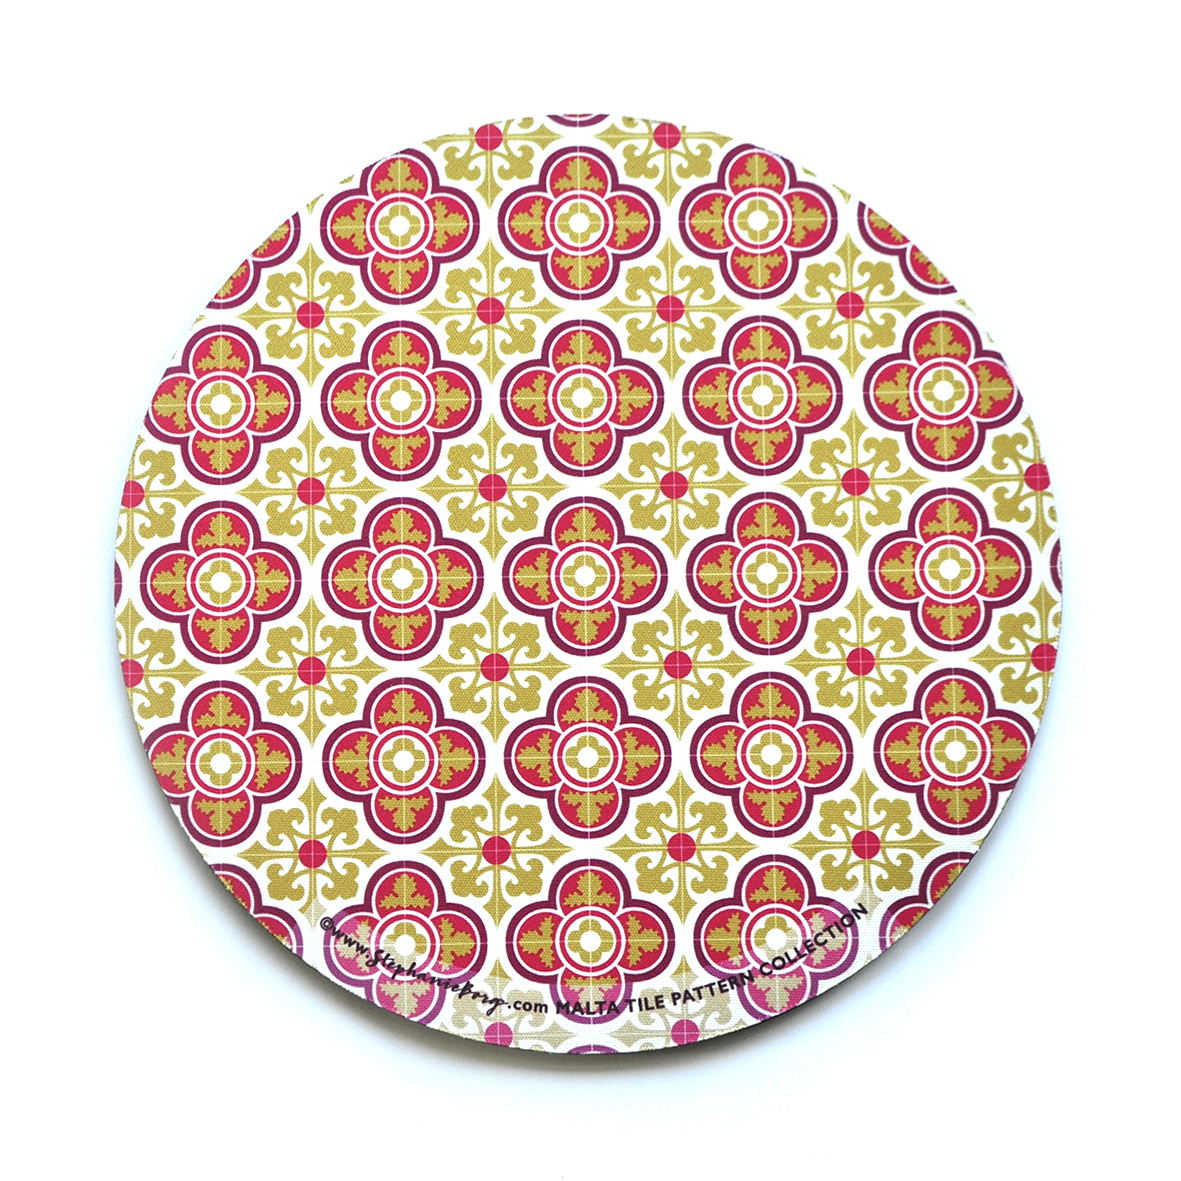 Mousepad with Maltese Tile Patterns, pattern no.4 - Stephanie Borg